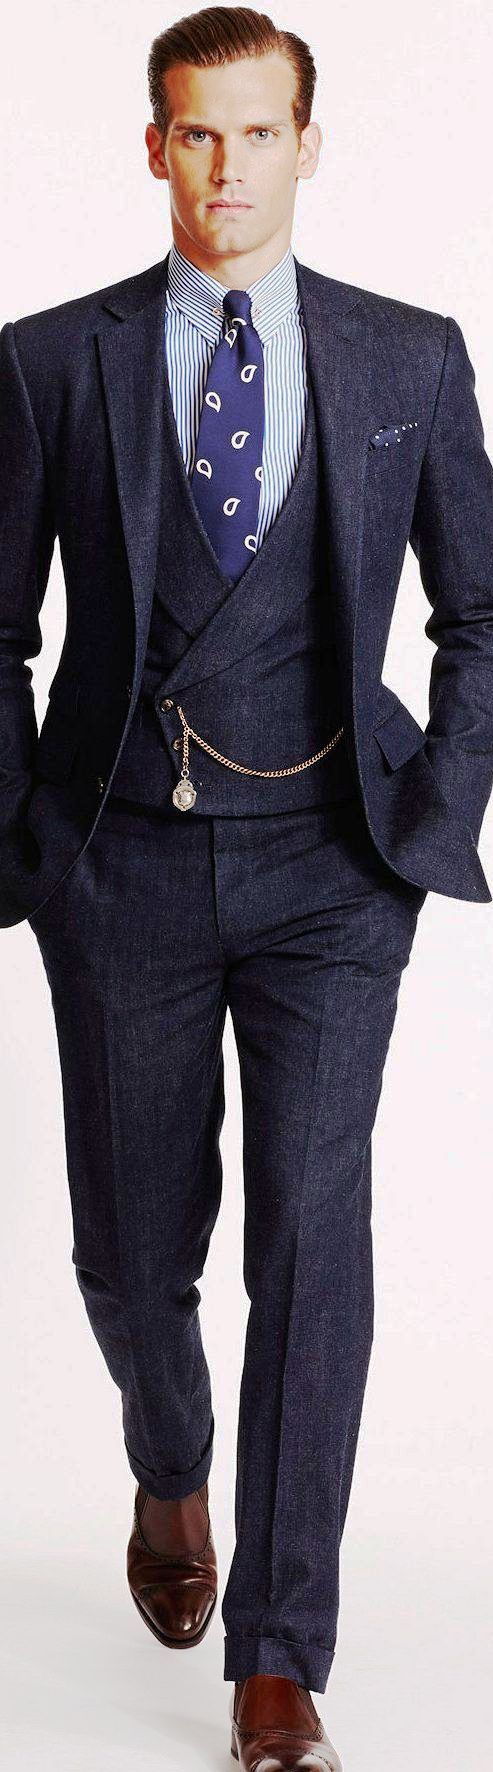 Best 25  Expensive suits ideas on Pinterest | Suit shops, Irish ...